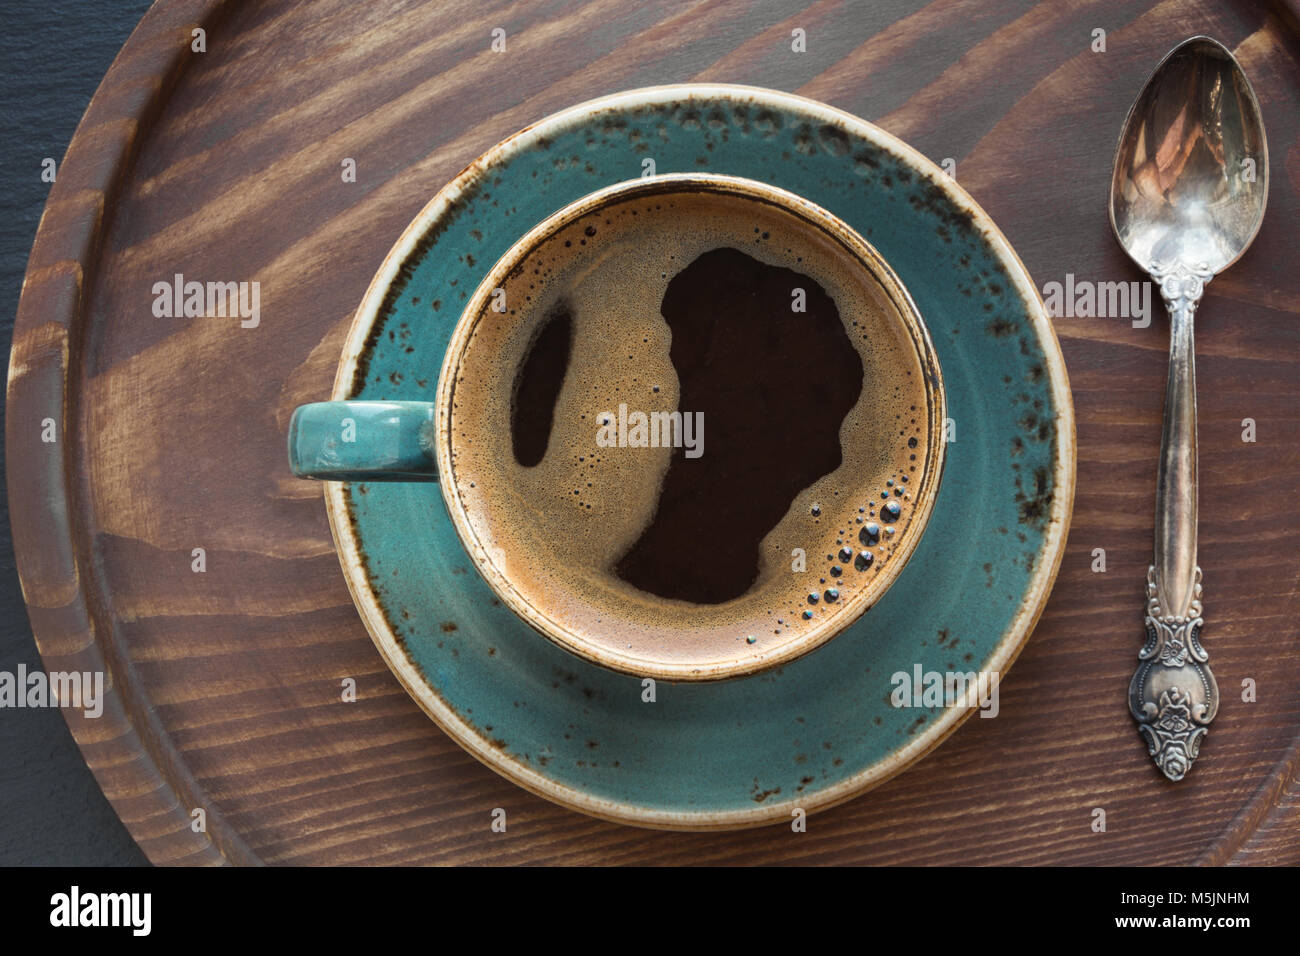 Cup of black coffee with coffee spoon on wooden tray. Top view. - Stock Image